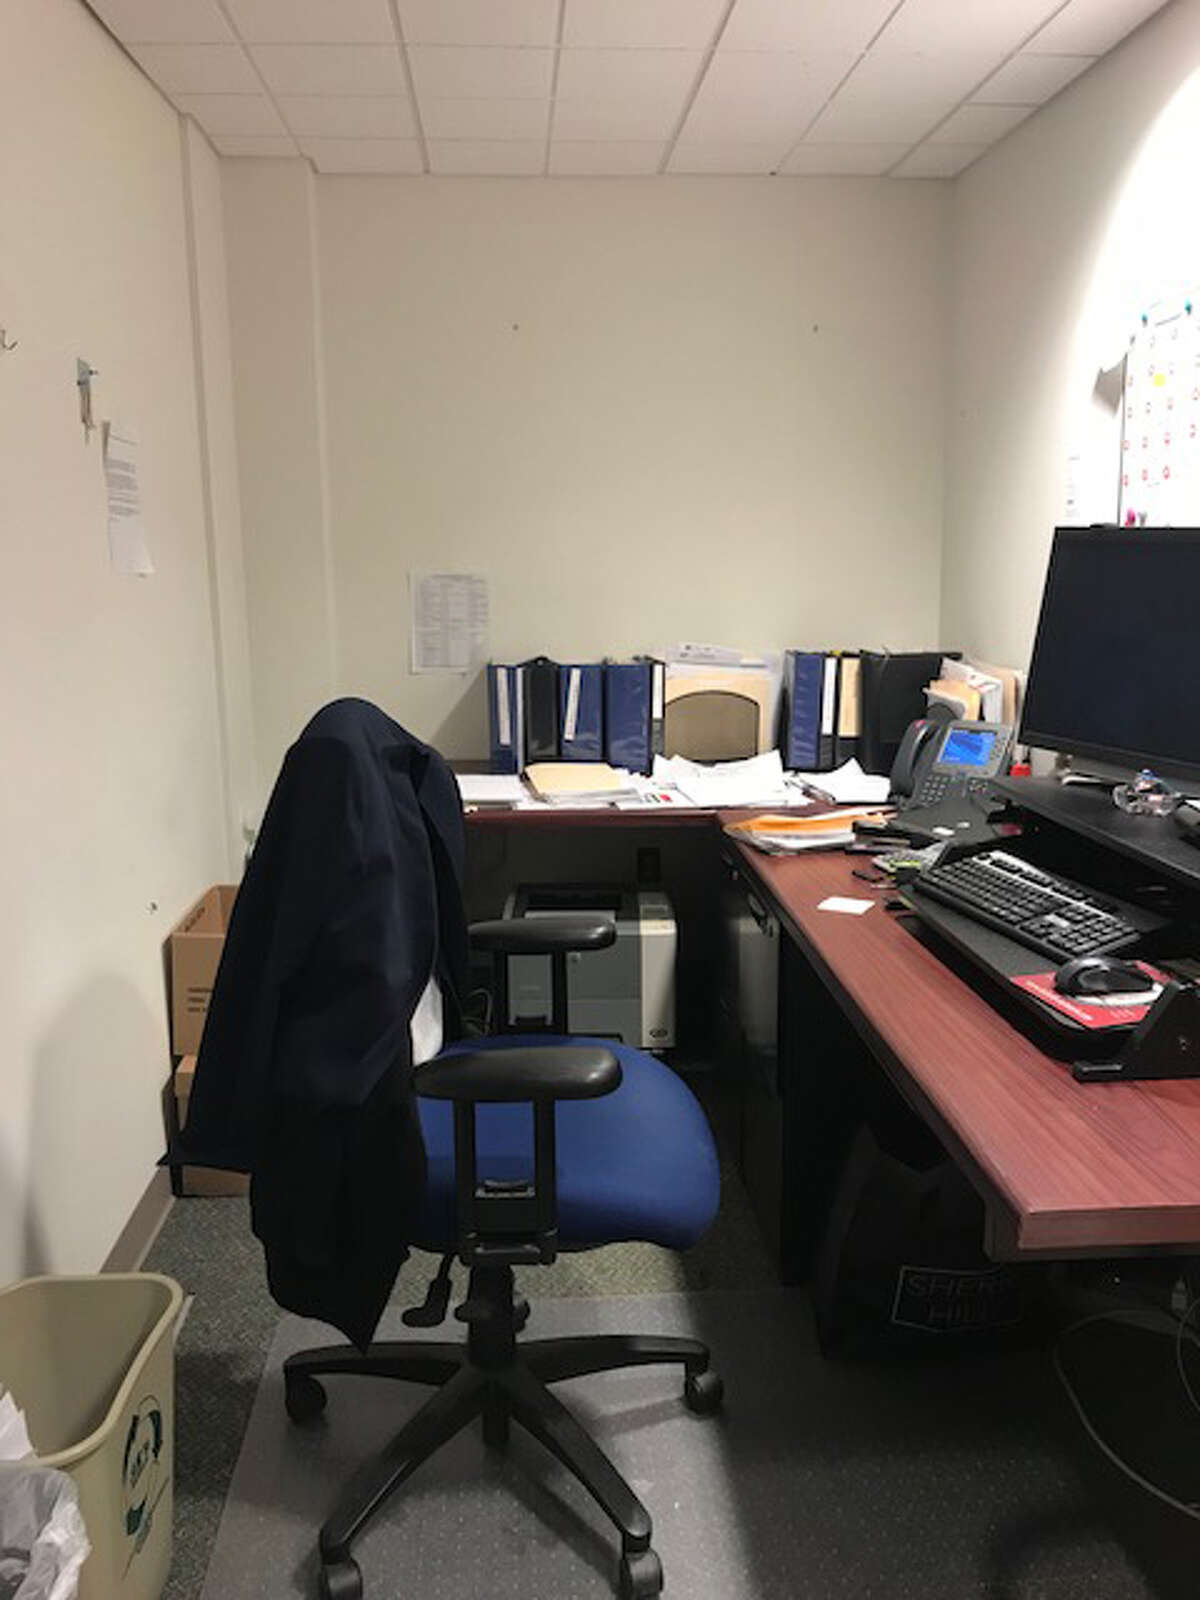 Instead, DCJS punished two women who provided testimony about the case to the state inspector general's office. In one case, the testimony was used to interrogate and terminate a female attorney. Another employee, Kimberly Schiavone, was transferred to a different department and provided an office that had been converted from a closet (see above).